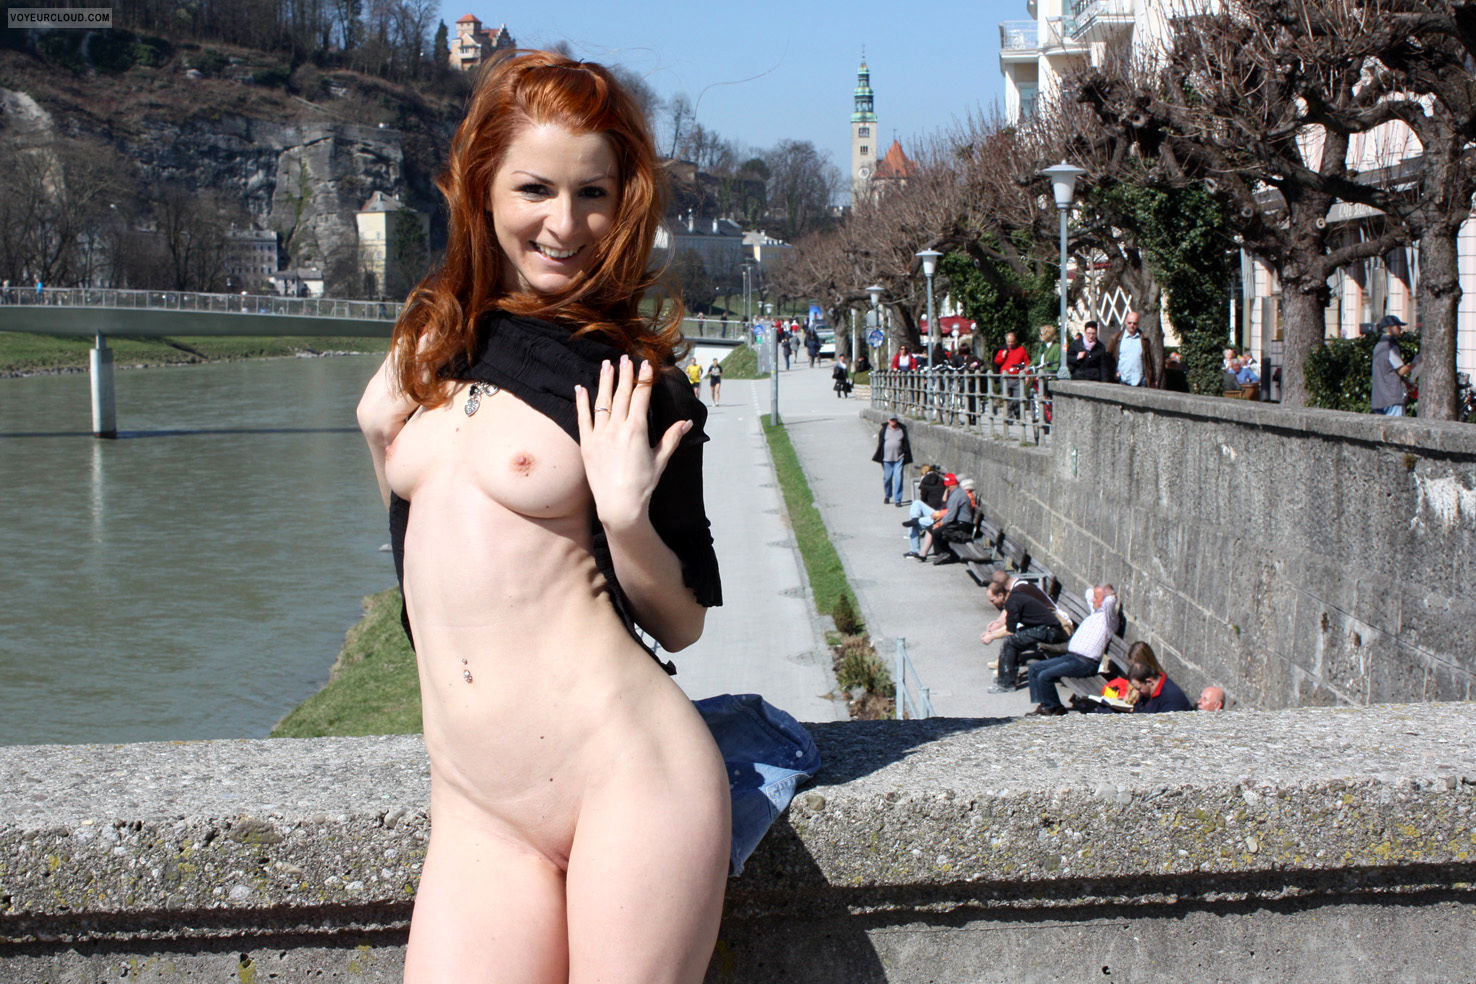 vienna-hot-day-in-salzburg-public-nude-05